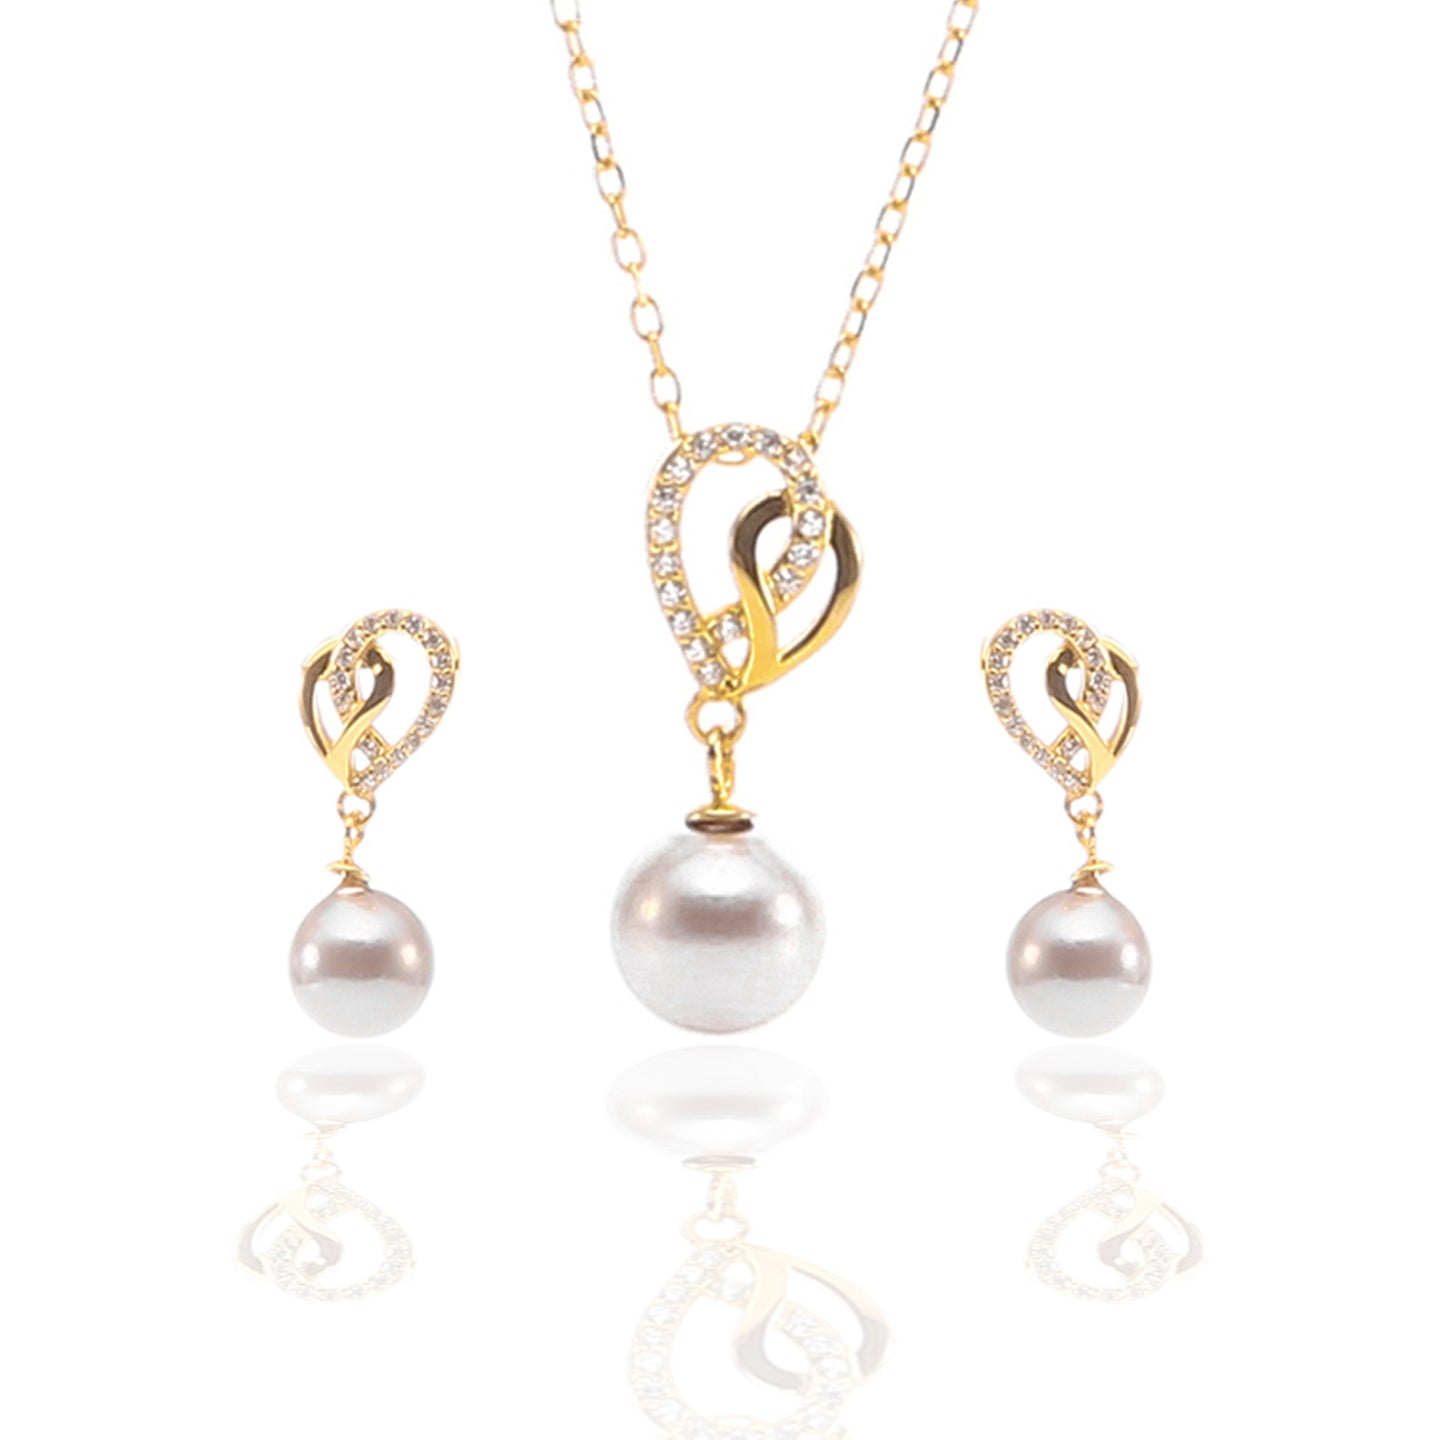 Open Heart Freshwater Hanging Pearl Pendant Necklace and Earrings Set - ARJW1026GD